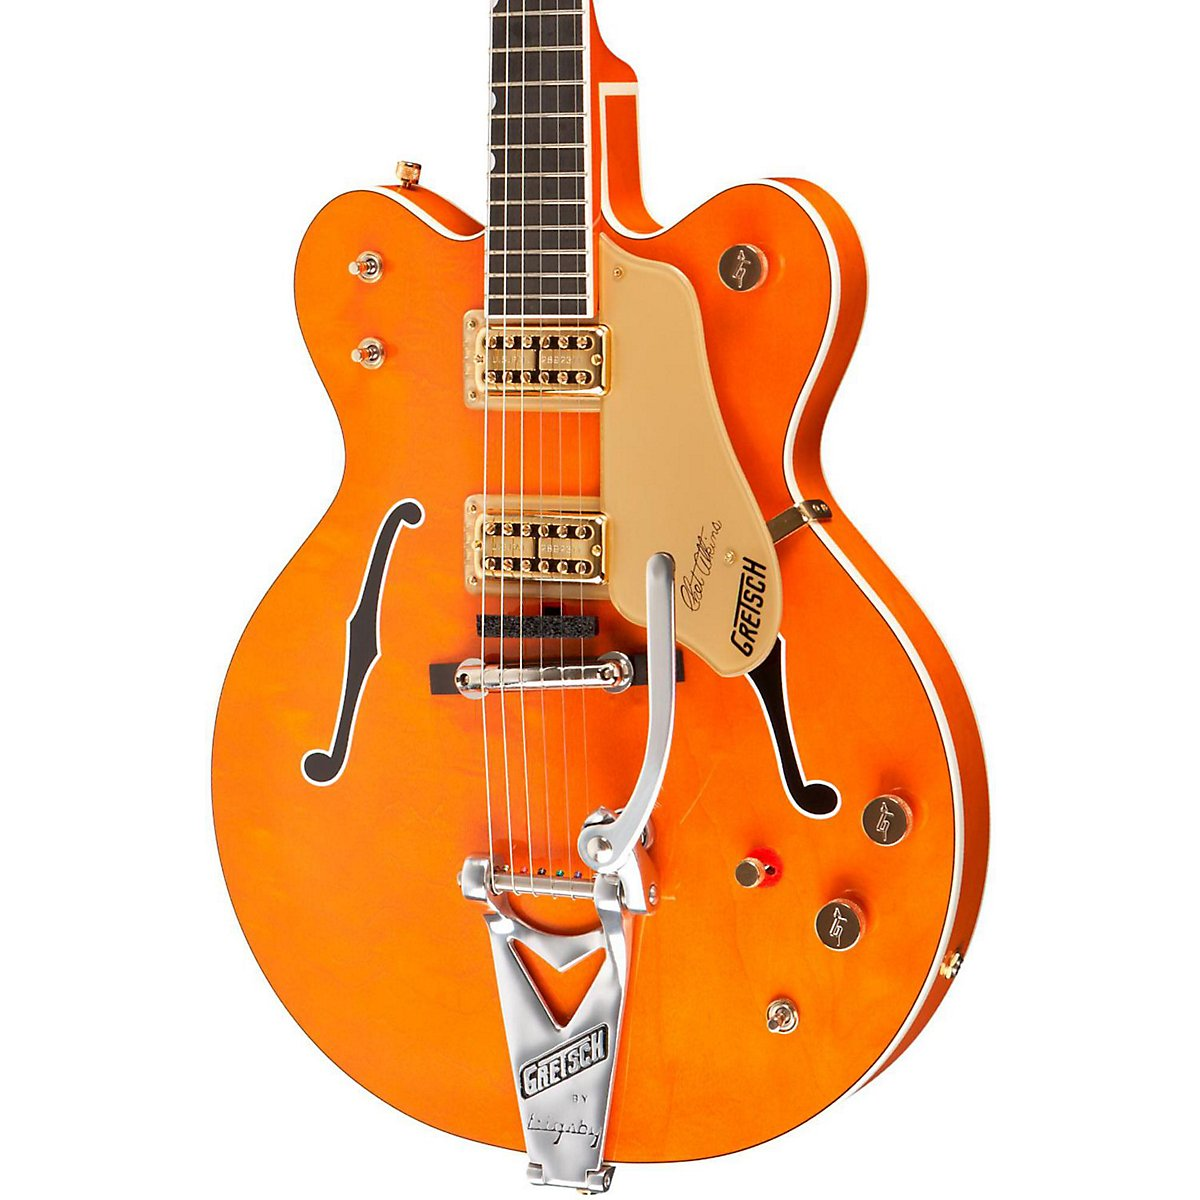 hollow body bass guitar wiring diagram wiring library gretsch g6120dc chet atkins double cutaway hollow body electric guitar orange amazon co